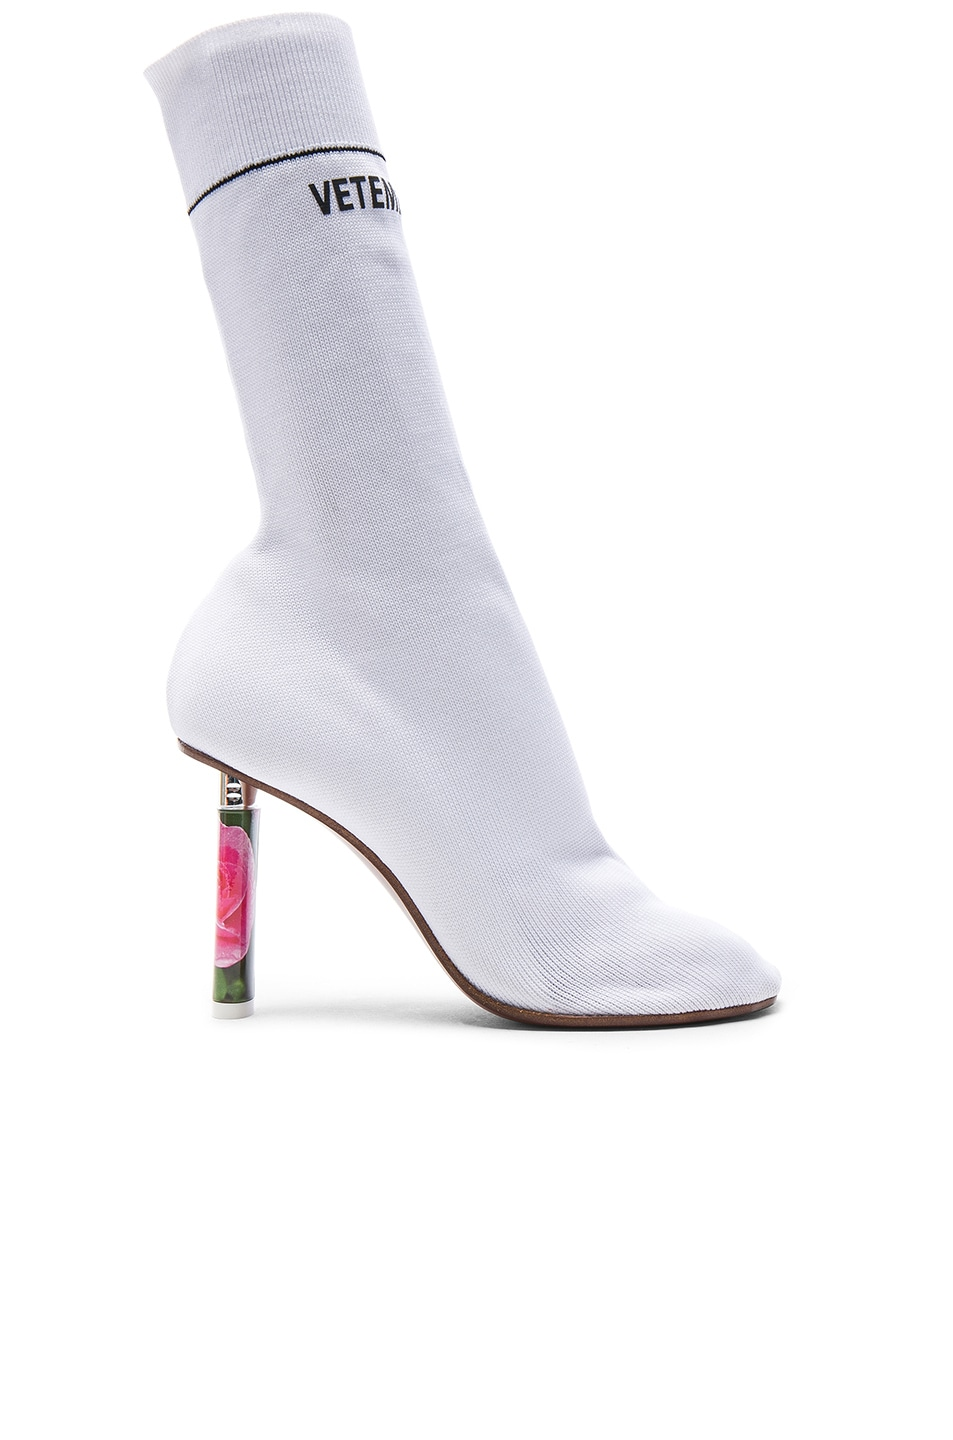 Image 1 of VETEMENTS Sock Ankle Boots in White & Roses